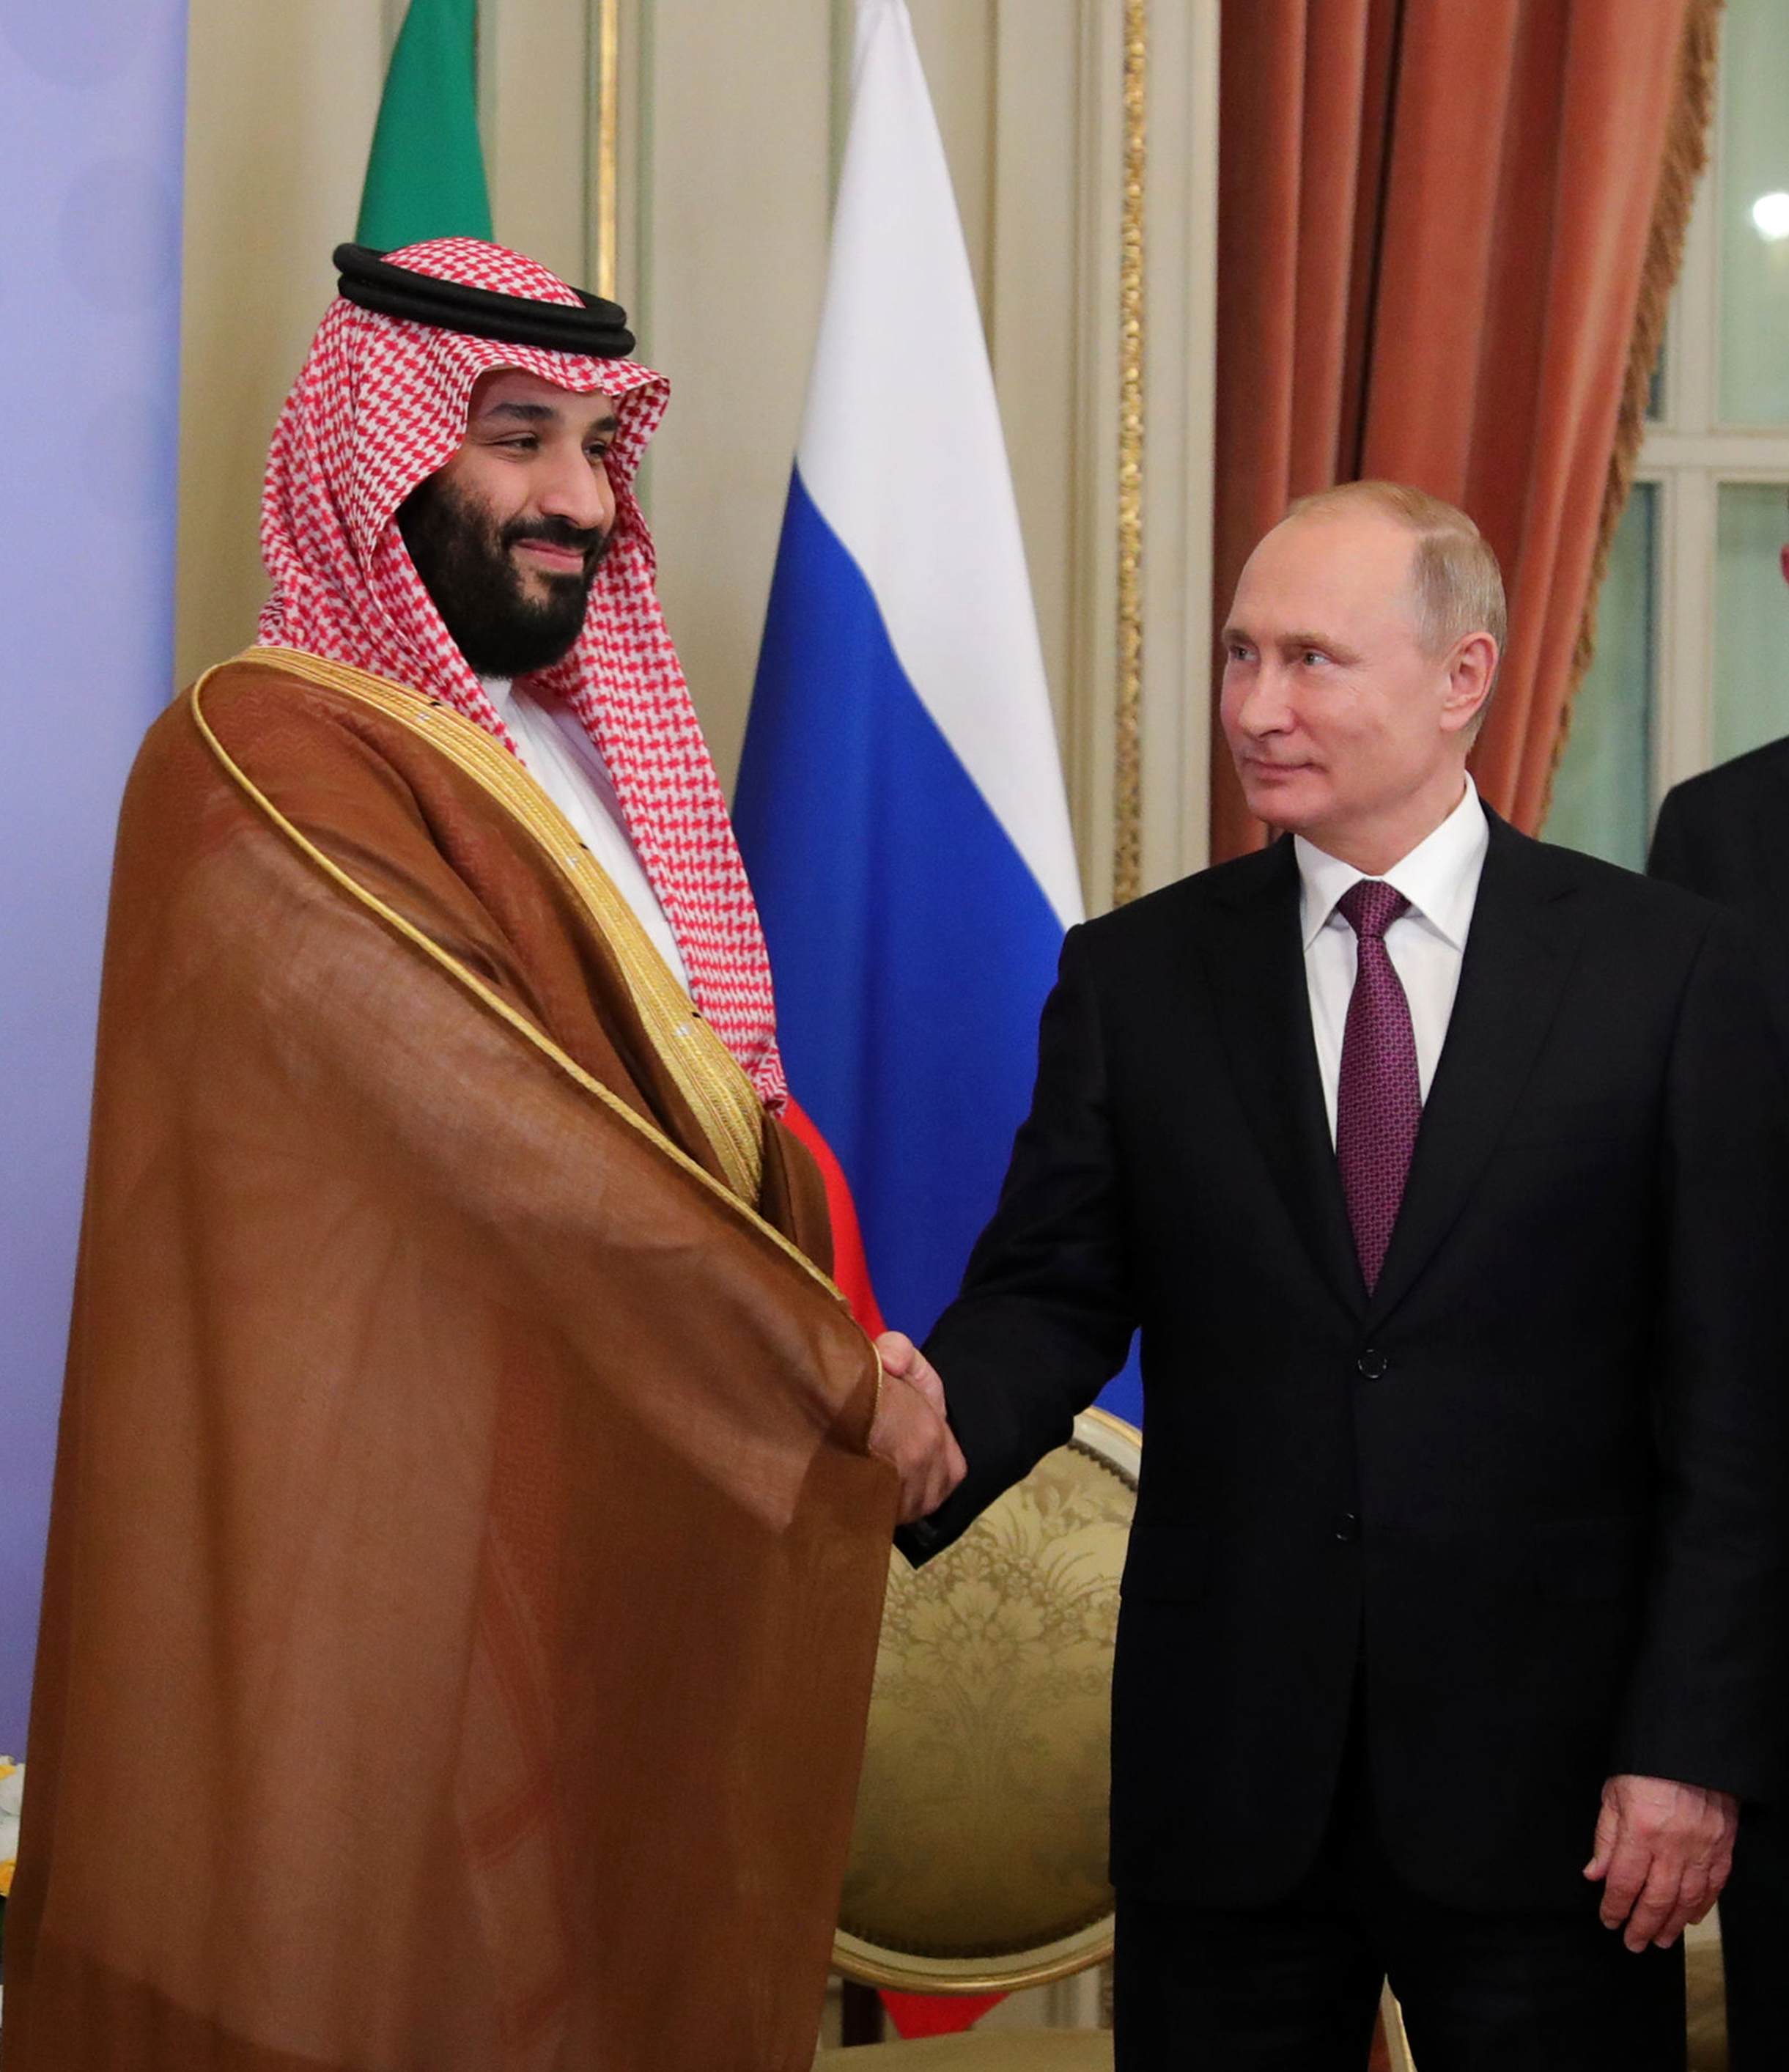 Saudi Arabia's Crown Prince Mohammed bin Salman, left, and Russian President Vladimir Putin, shake hands prior their talks at the G20 summit in Buenos Aires